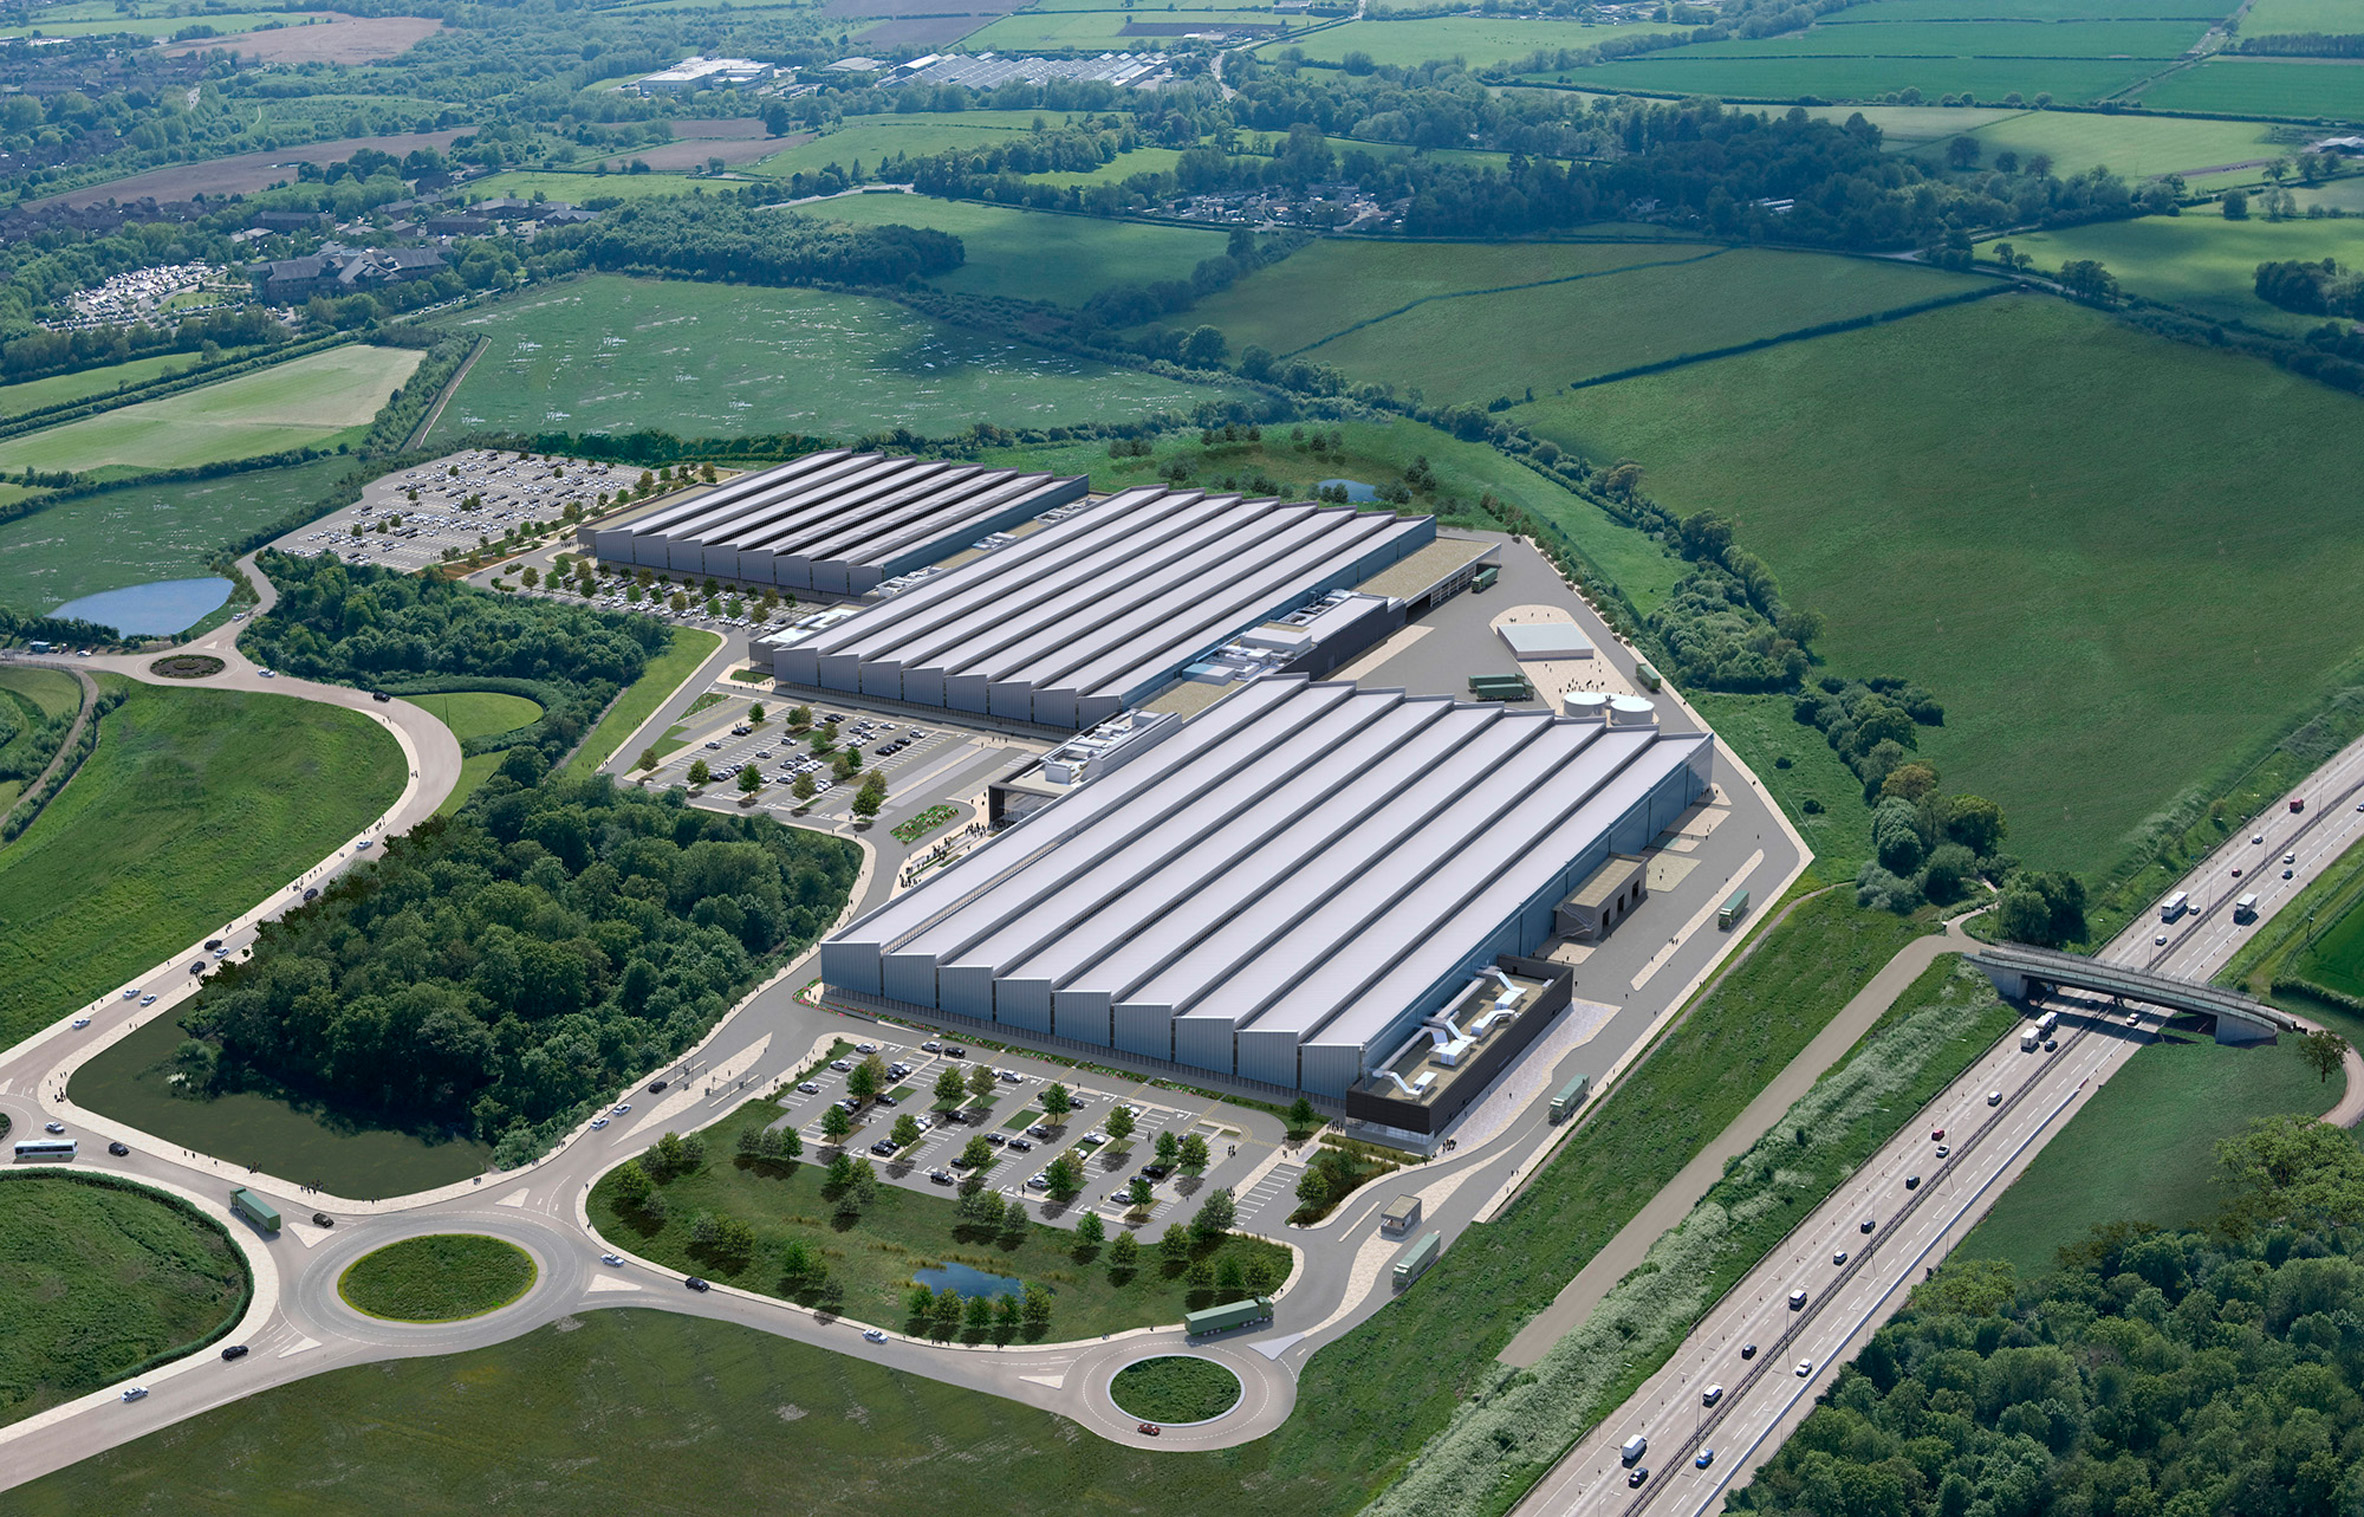 Arup Associates completes enormous day-lit factory for Jaguar Land Rover in England